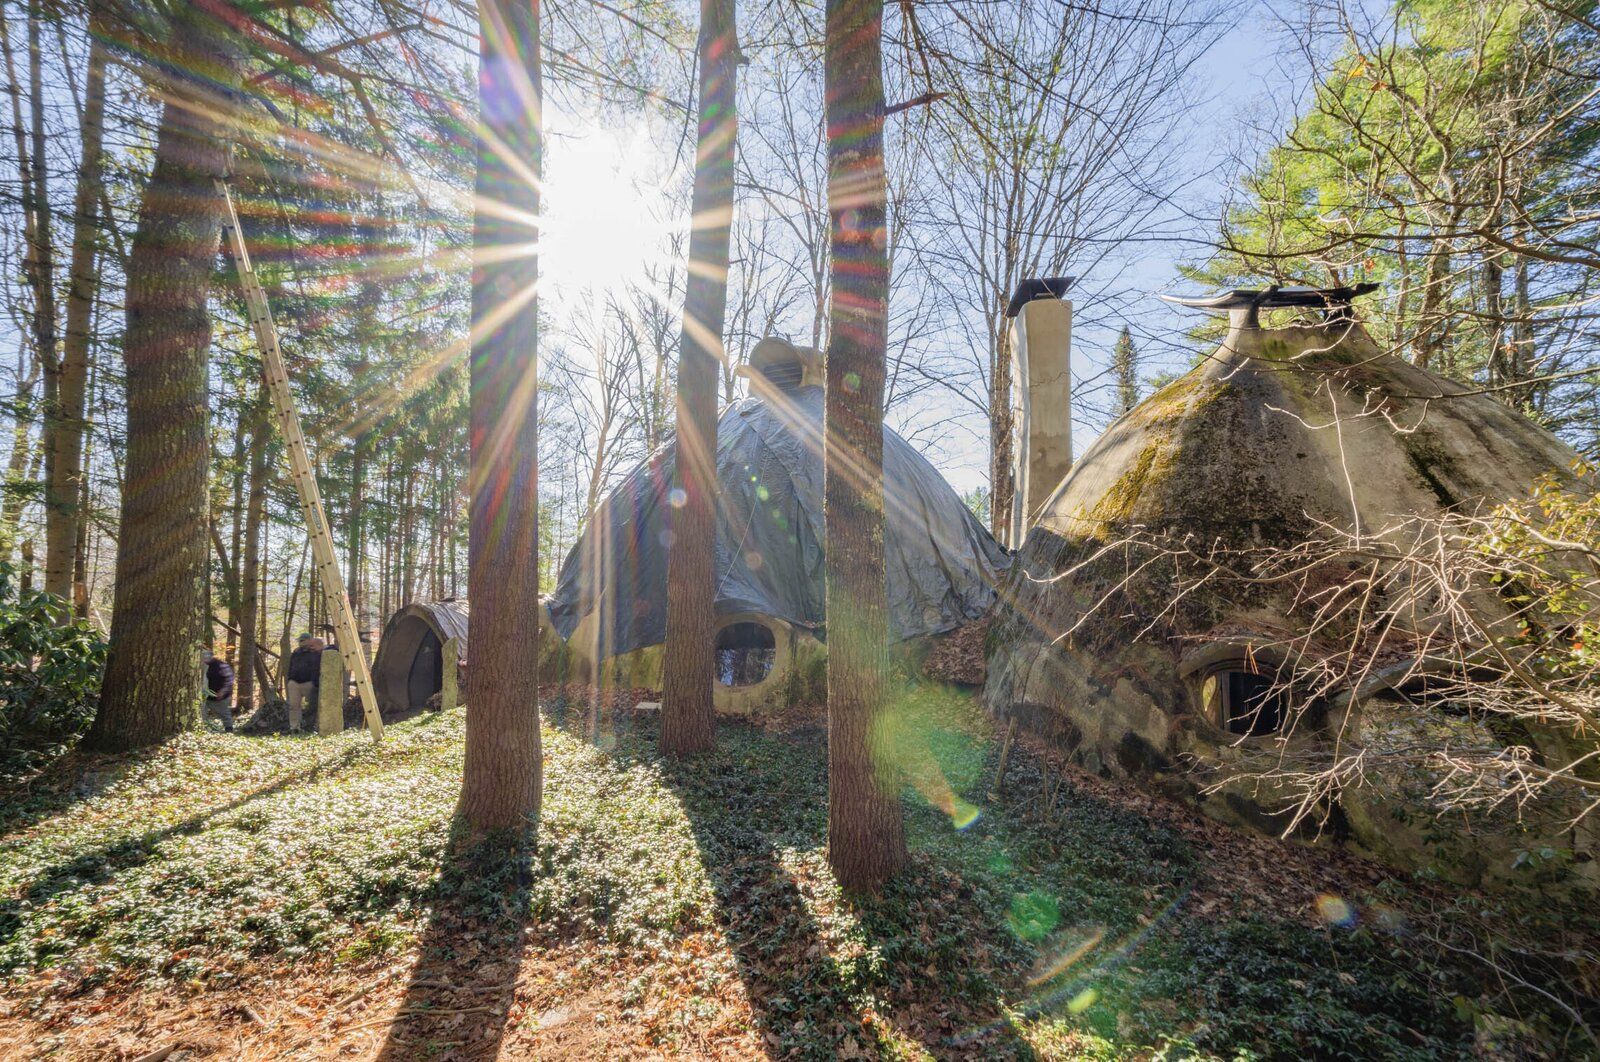 Air ducts on top of the two main domes help to circulate air and provide natural ventilation.  Photo 12 of 12 in Asking $220K, an Architect's Handcrafted Earthen Home Seeks a Visionary Buyer in Vermont